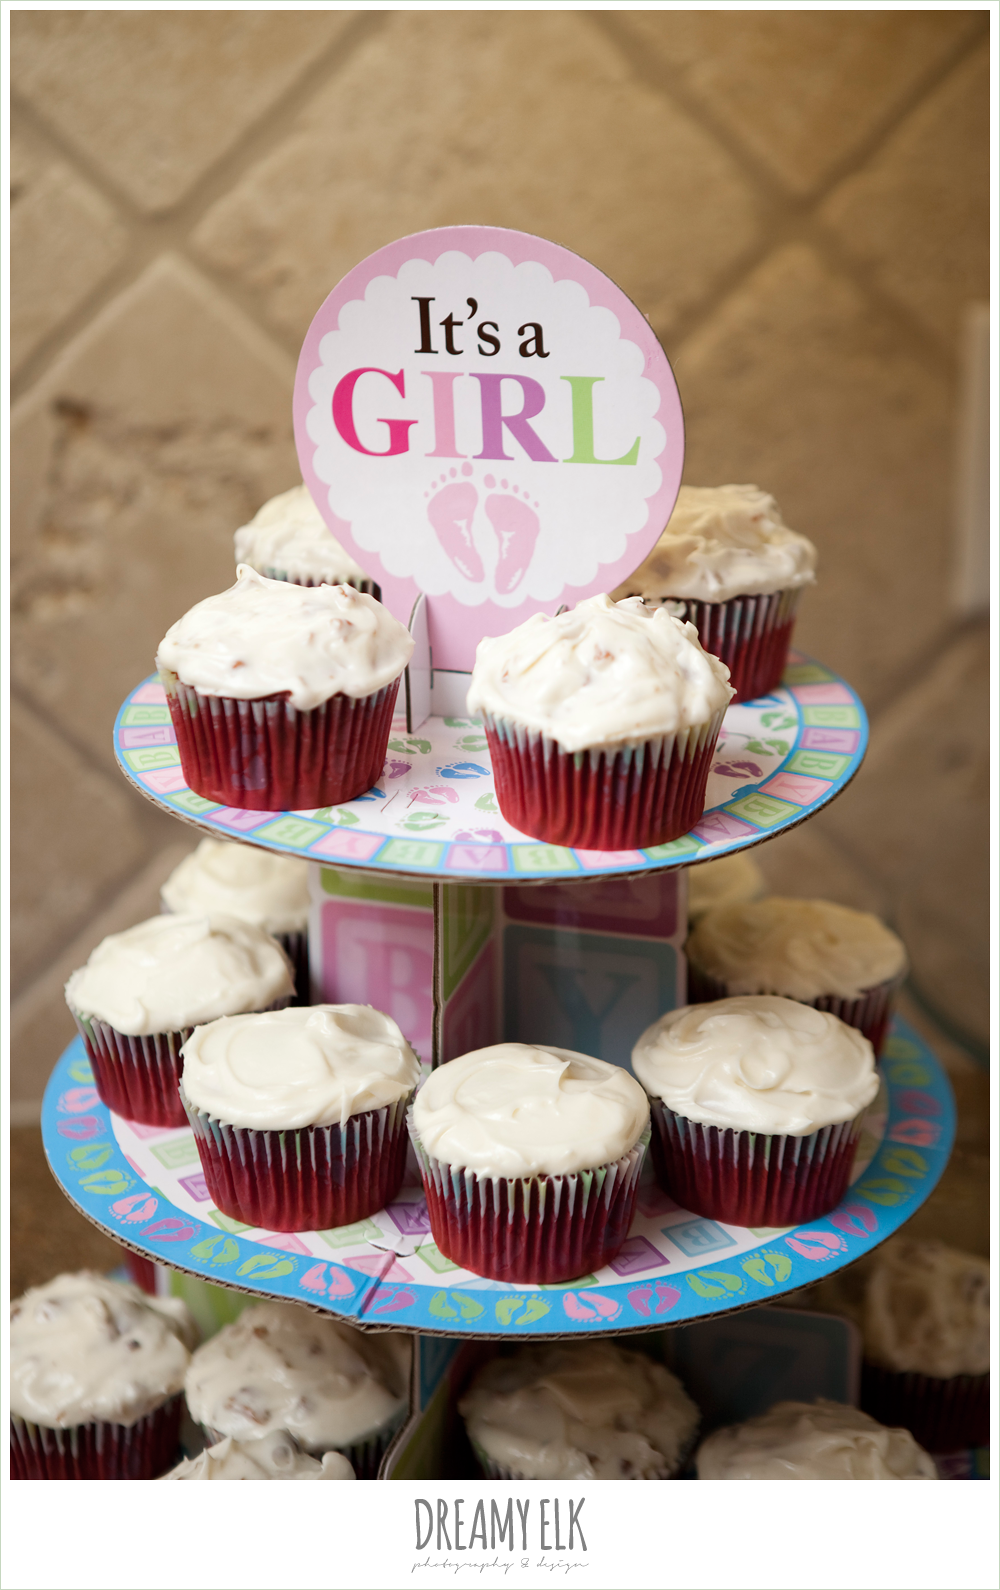 it's a girl, cupcake tray